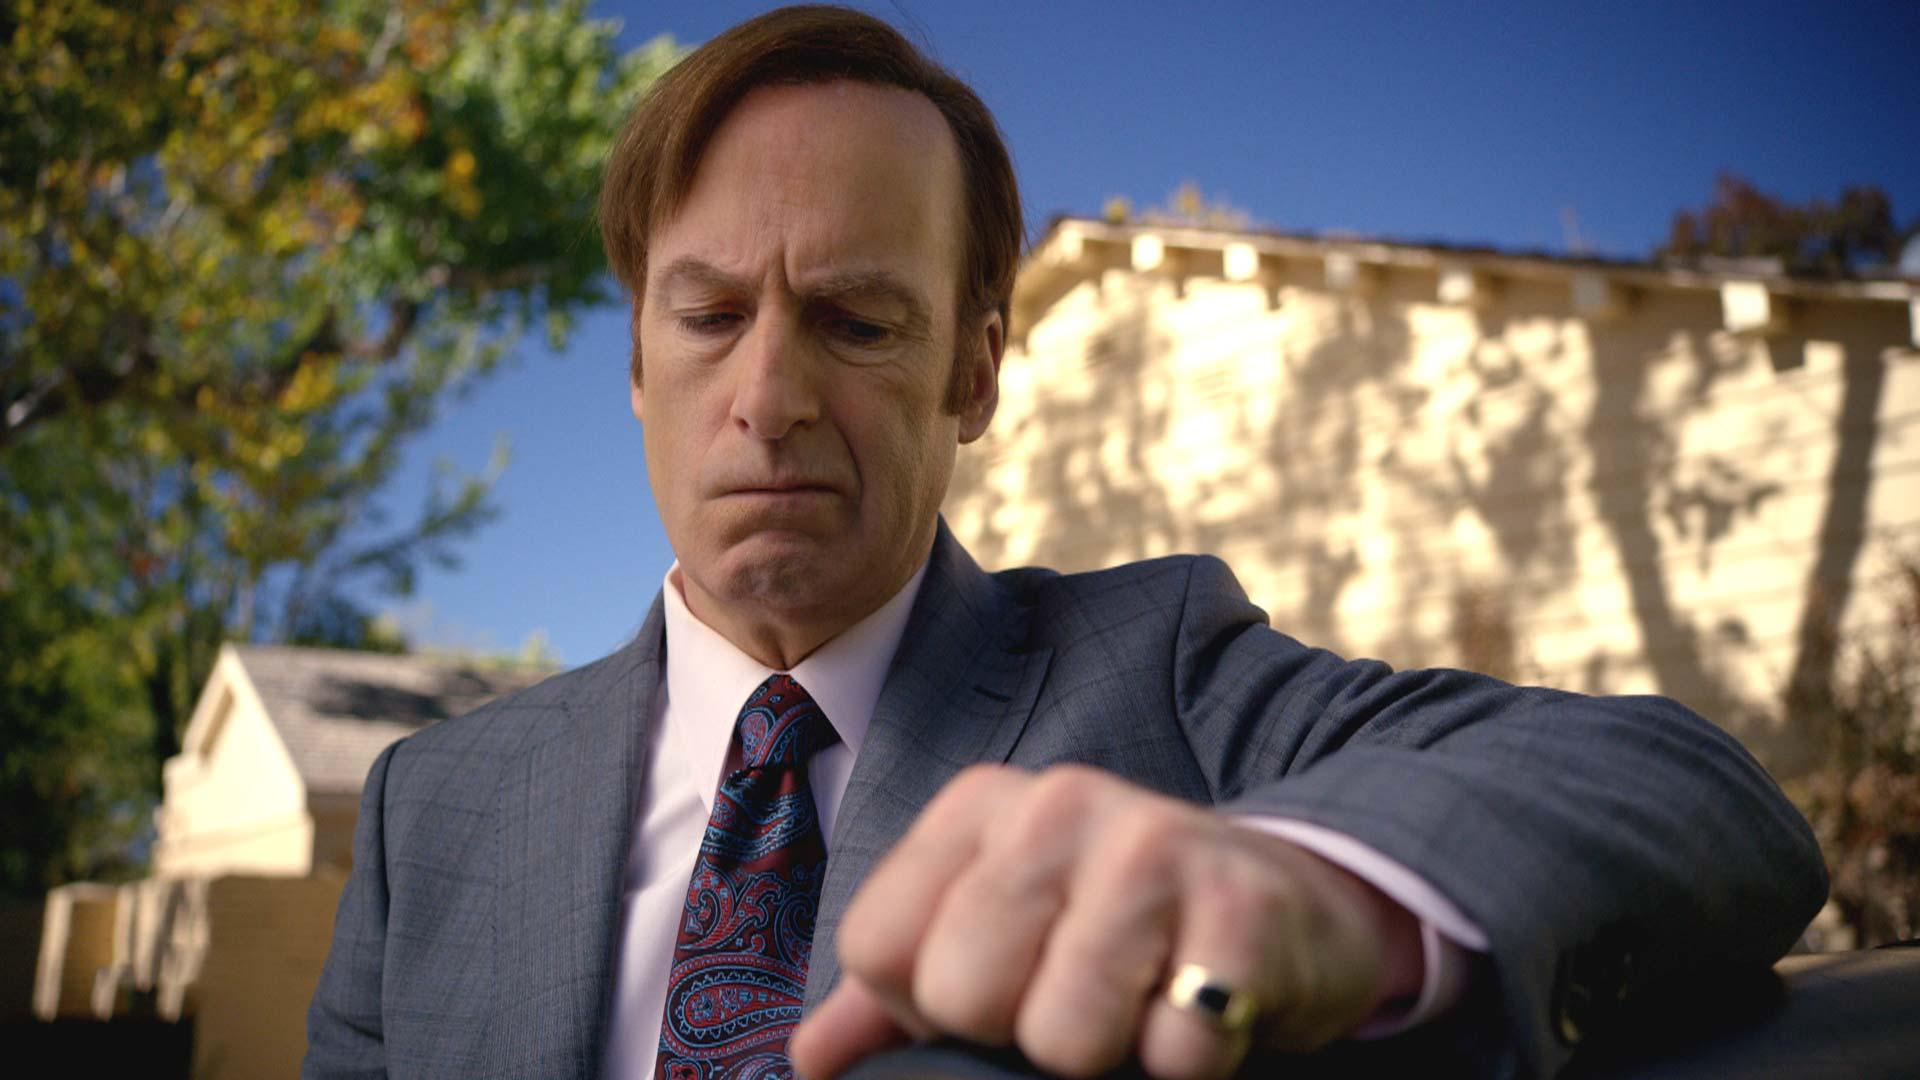 Actor Bob Odenkirk says he had a heart attack, but will 'be back soon'     – CNET